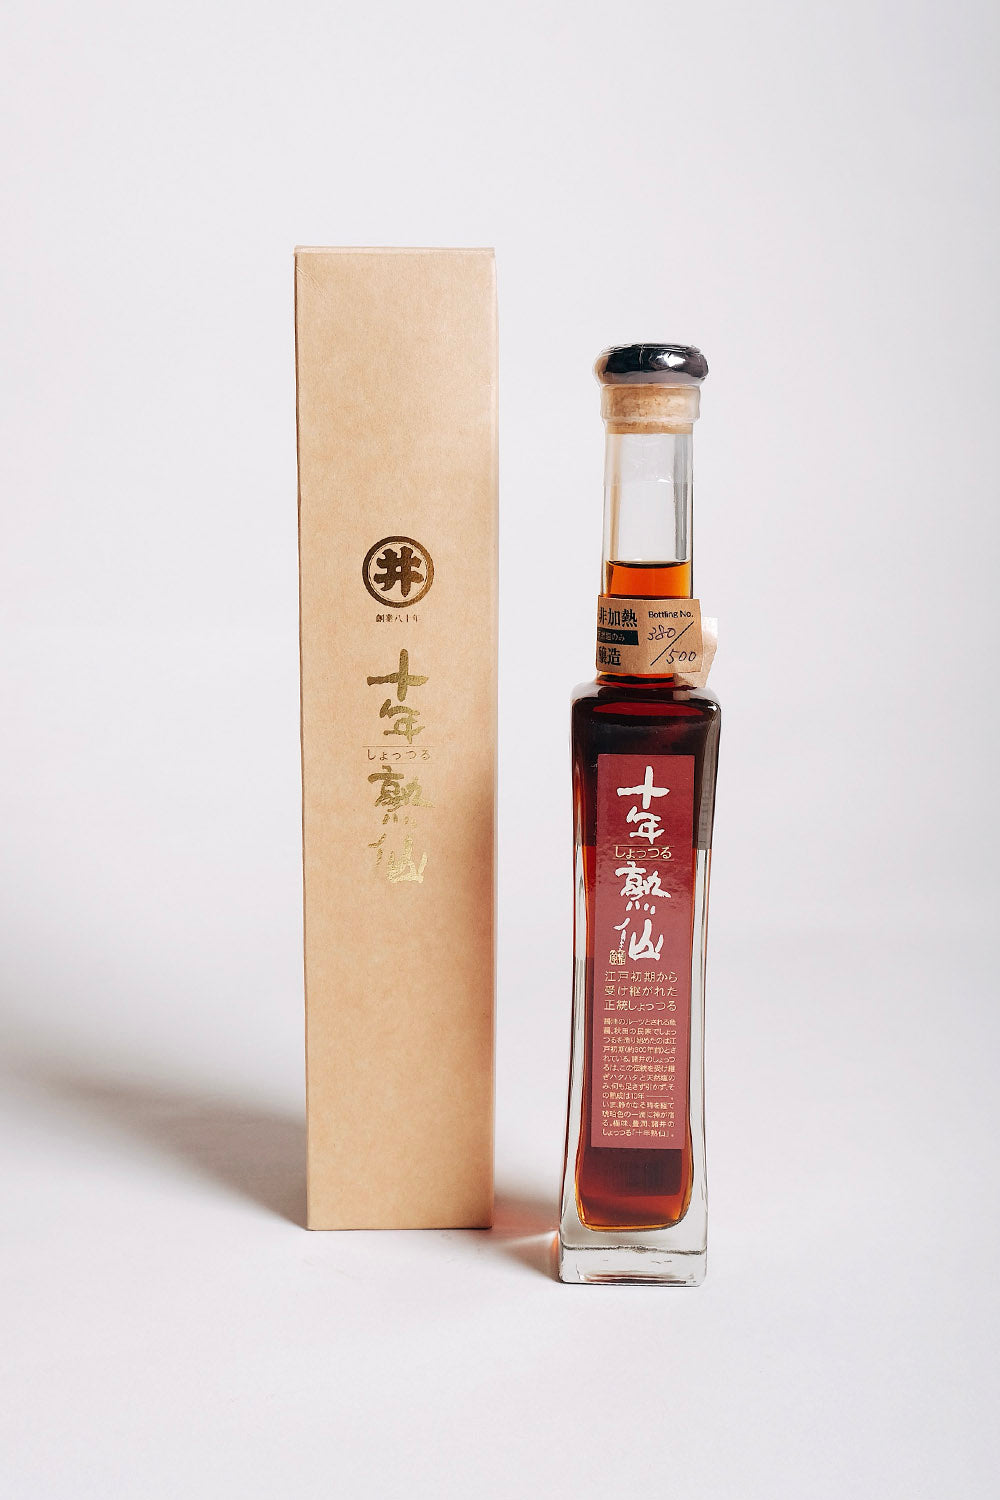 10+ Year Old Japanese Fish Sauce